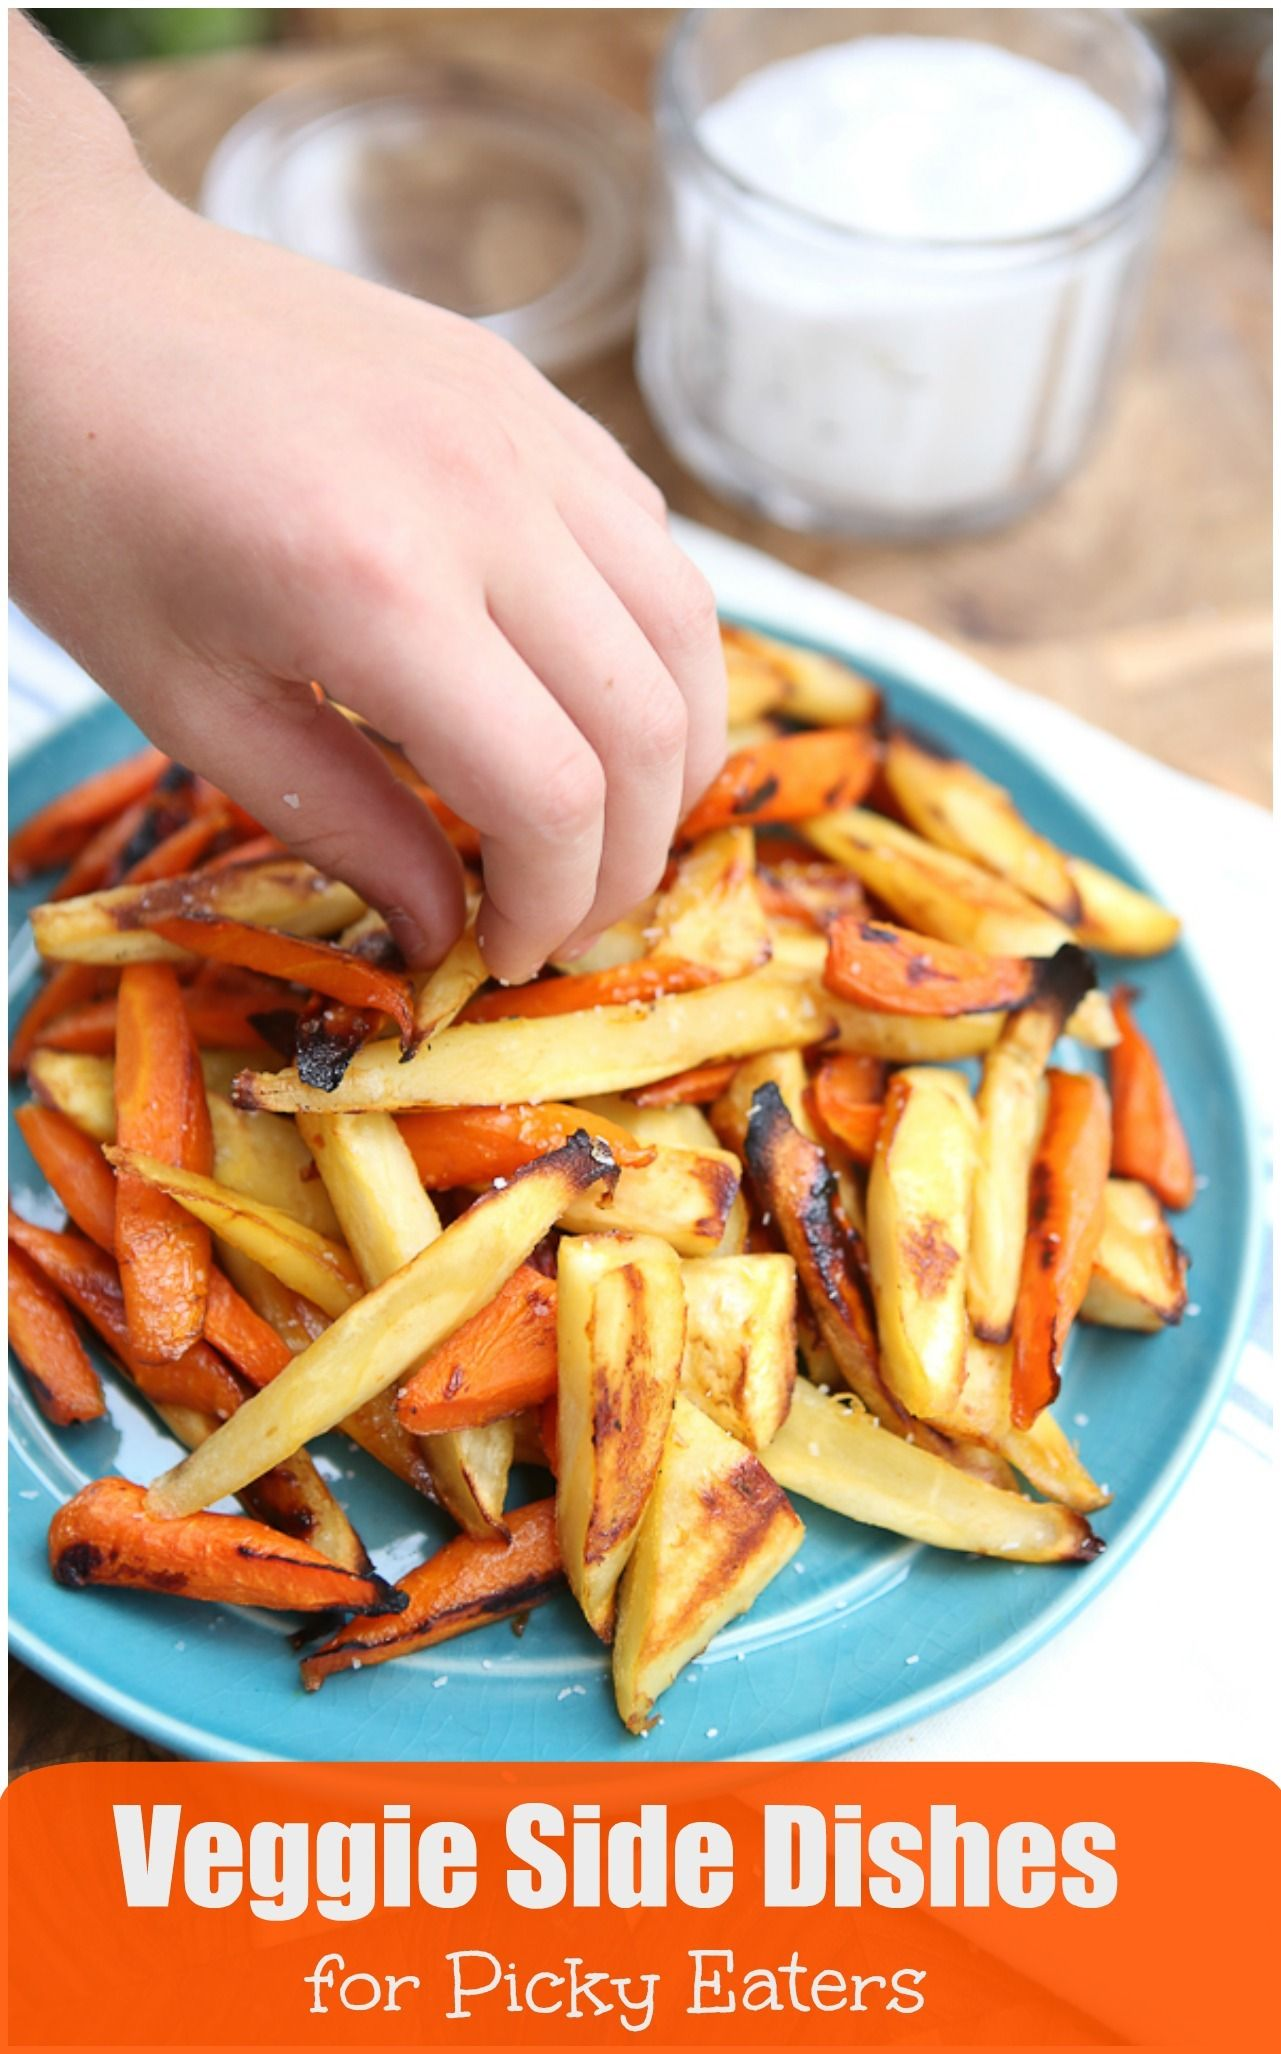 Veggie Side Dishes for Picky Eaters images